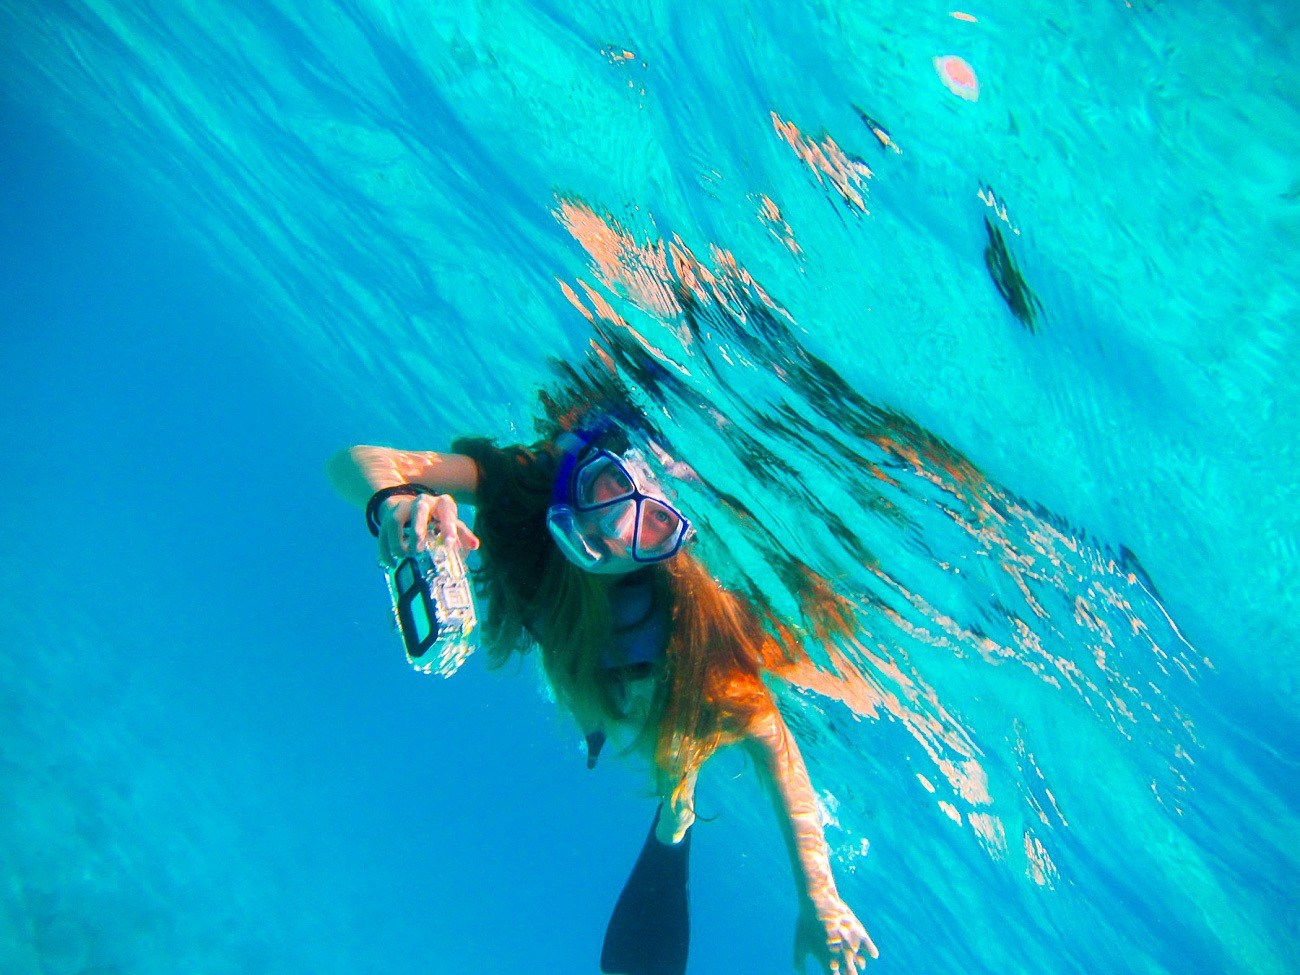 A snorkeler in water with an underwater camera.